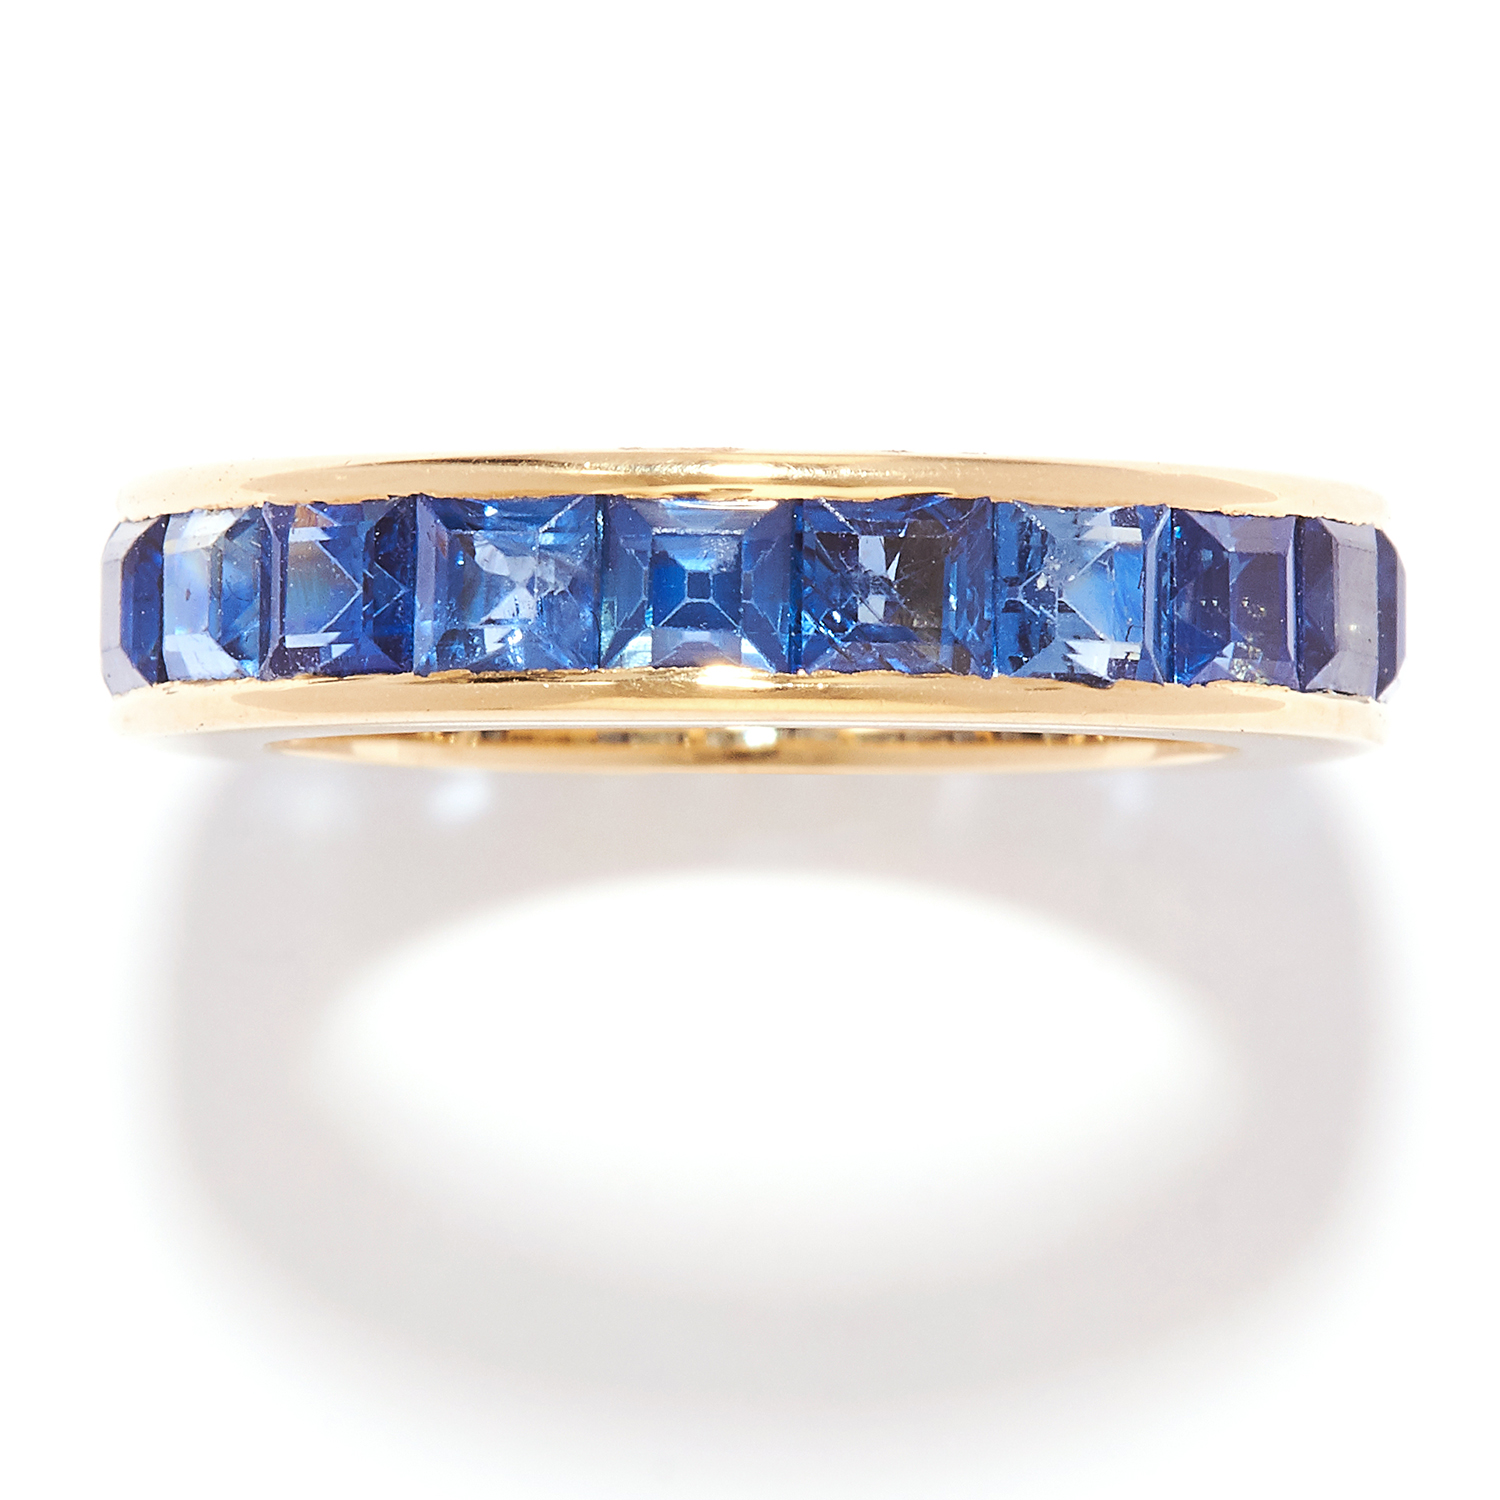 SAPPHIRE ETERNITY BAND RING in 18ct yellow gold, set with square cut sapphires, British hallmarks,